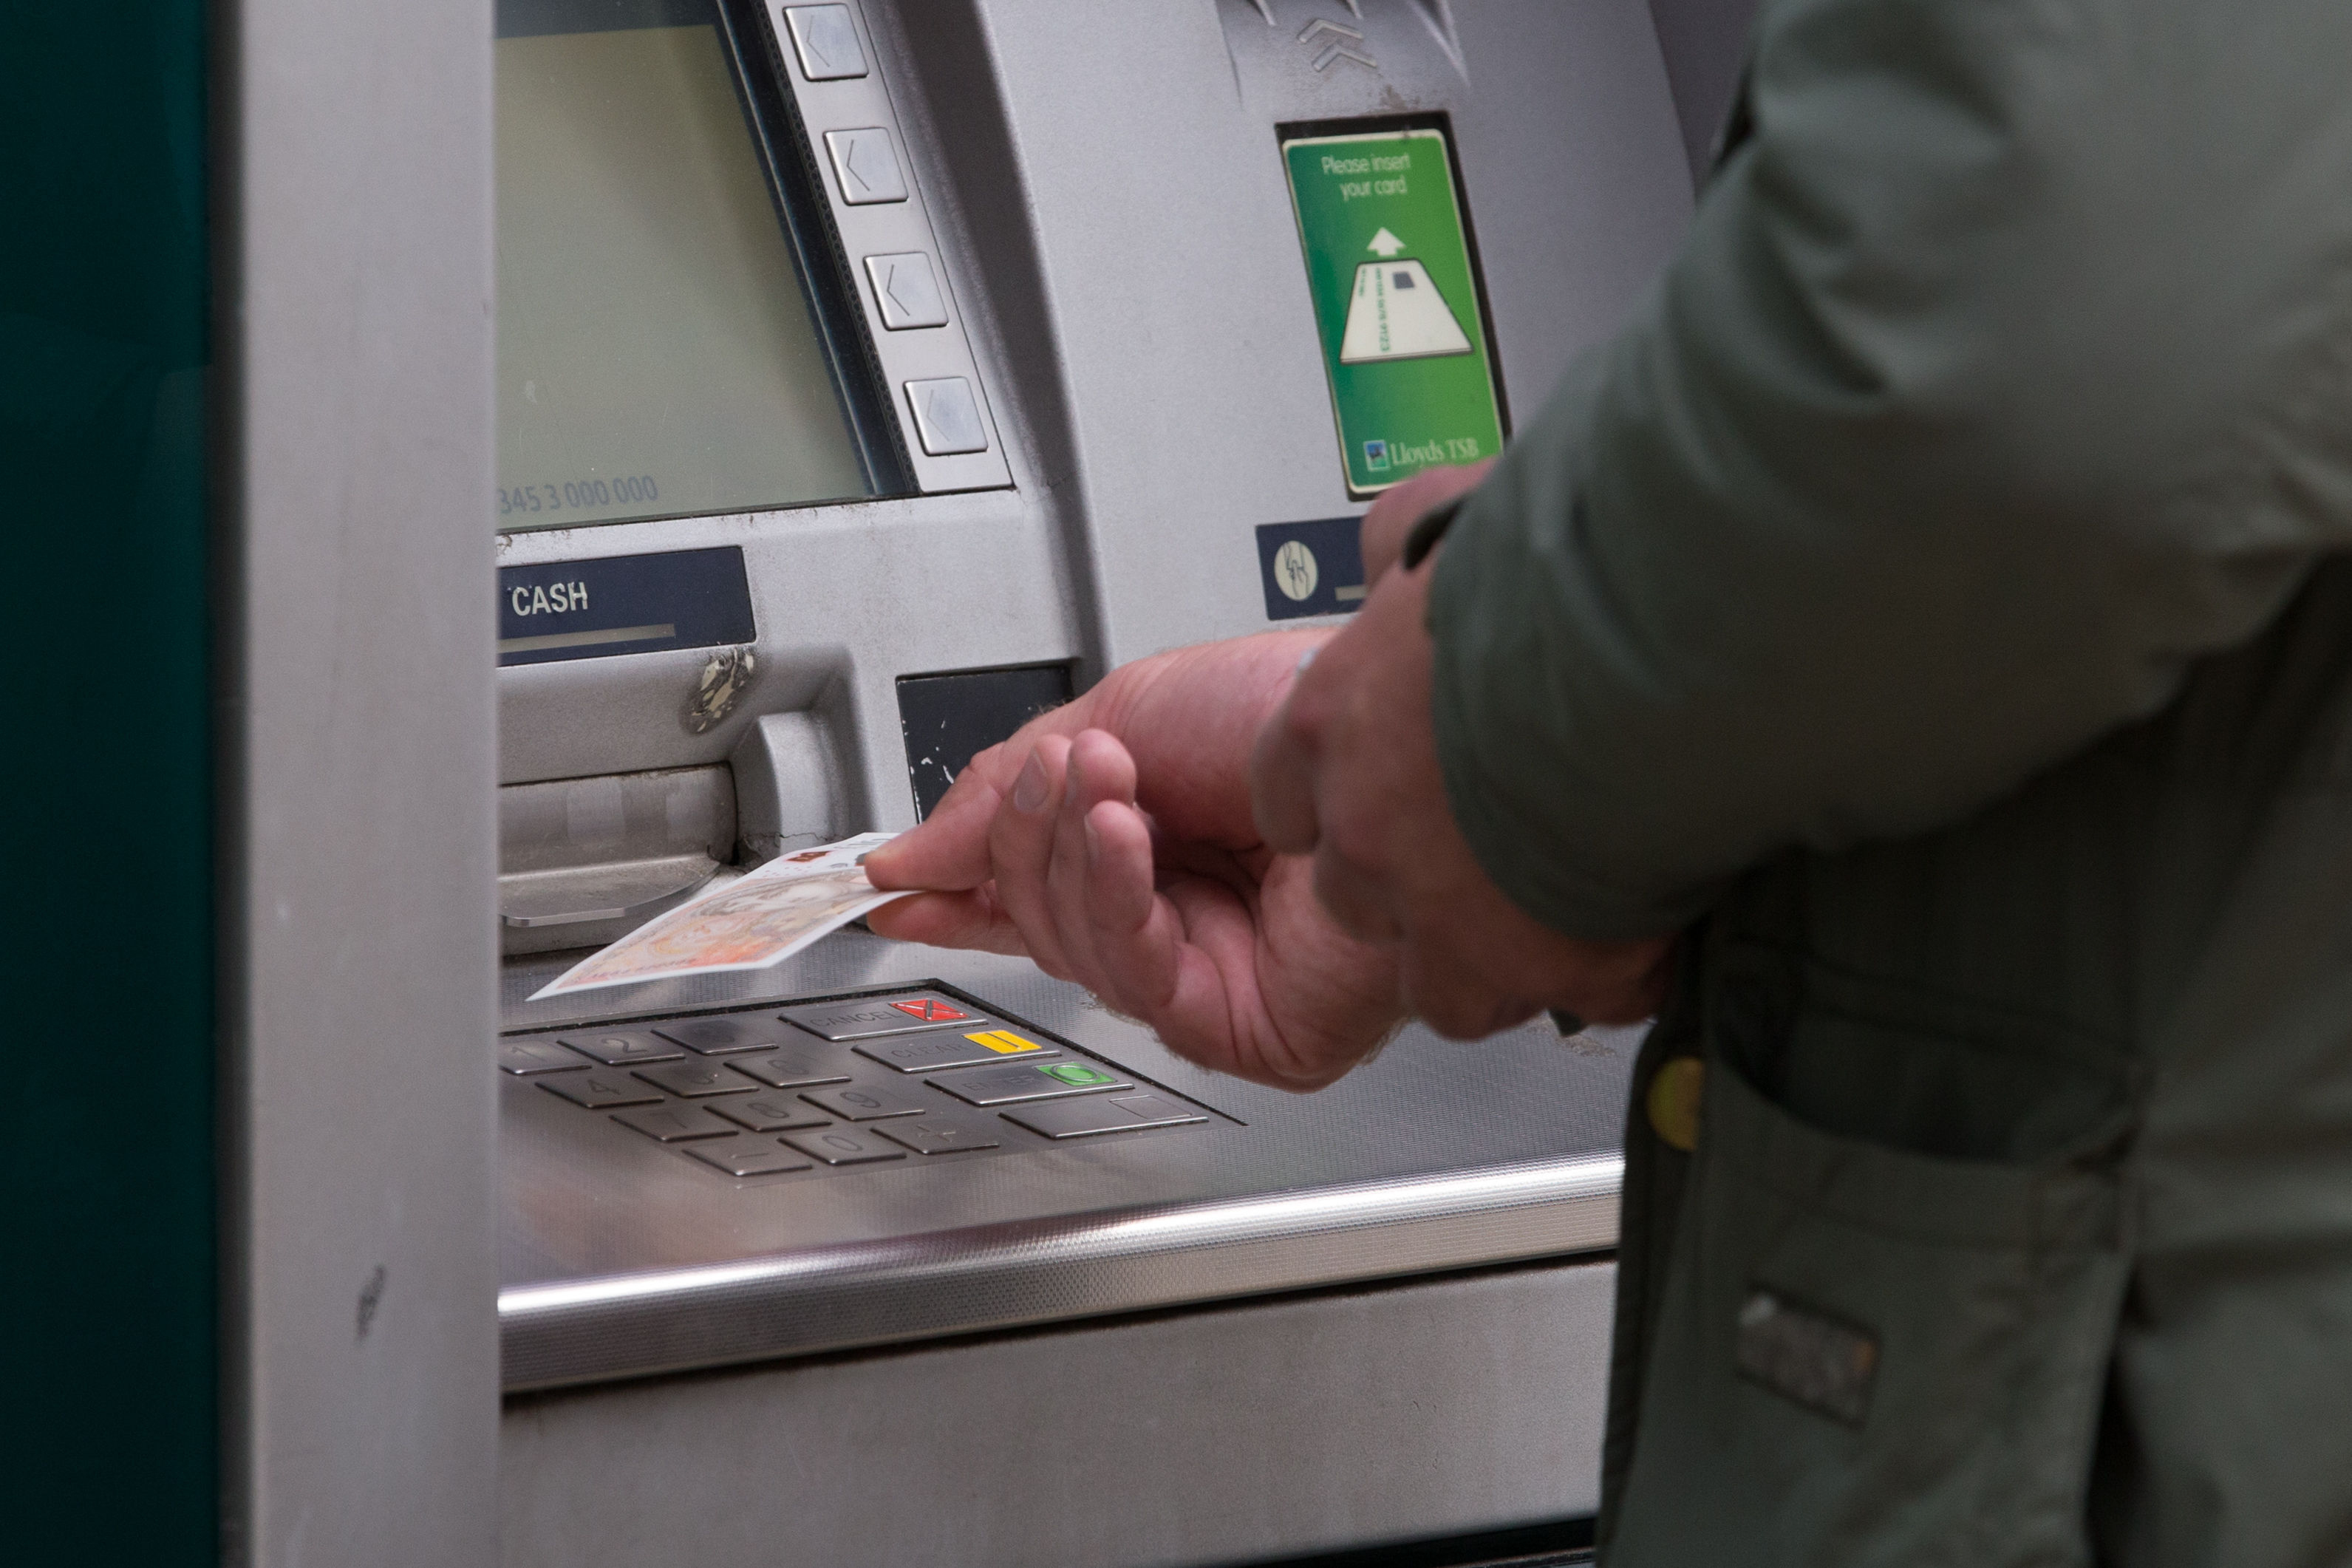 EMBARGOED TO 0001 MONDAY JULY 22 File photo dated 14/09/17 of a man withdrawing money from an ATM. The volume of cash withdrawals from ATMs declined year-on-year across the UK's nations and regions in early 2019, according to cash machine network Link.